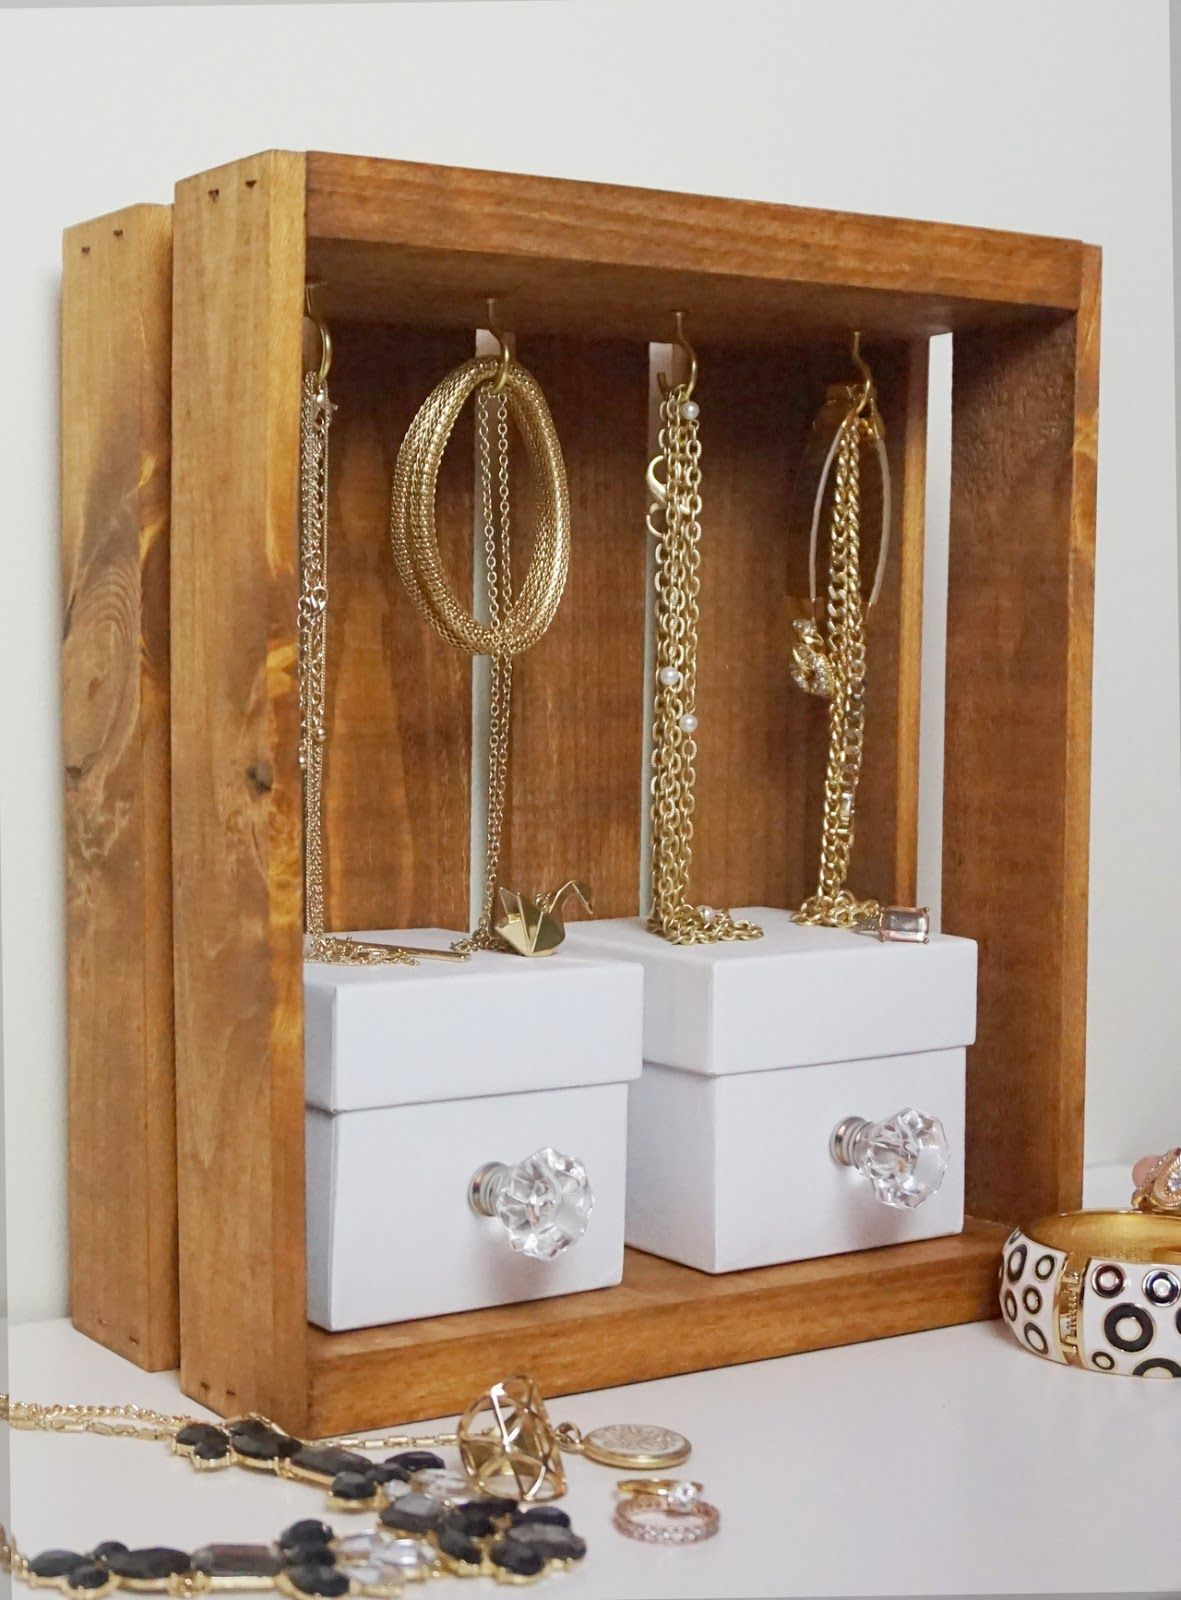 Thediydiary do it yourself jewelry display crate mobiliario para thediydiary do it yourself jewelry display crate solutioingenieria Images